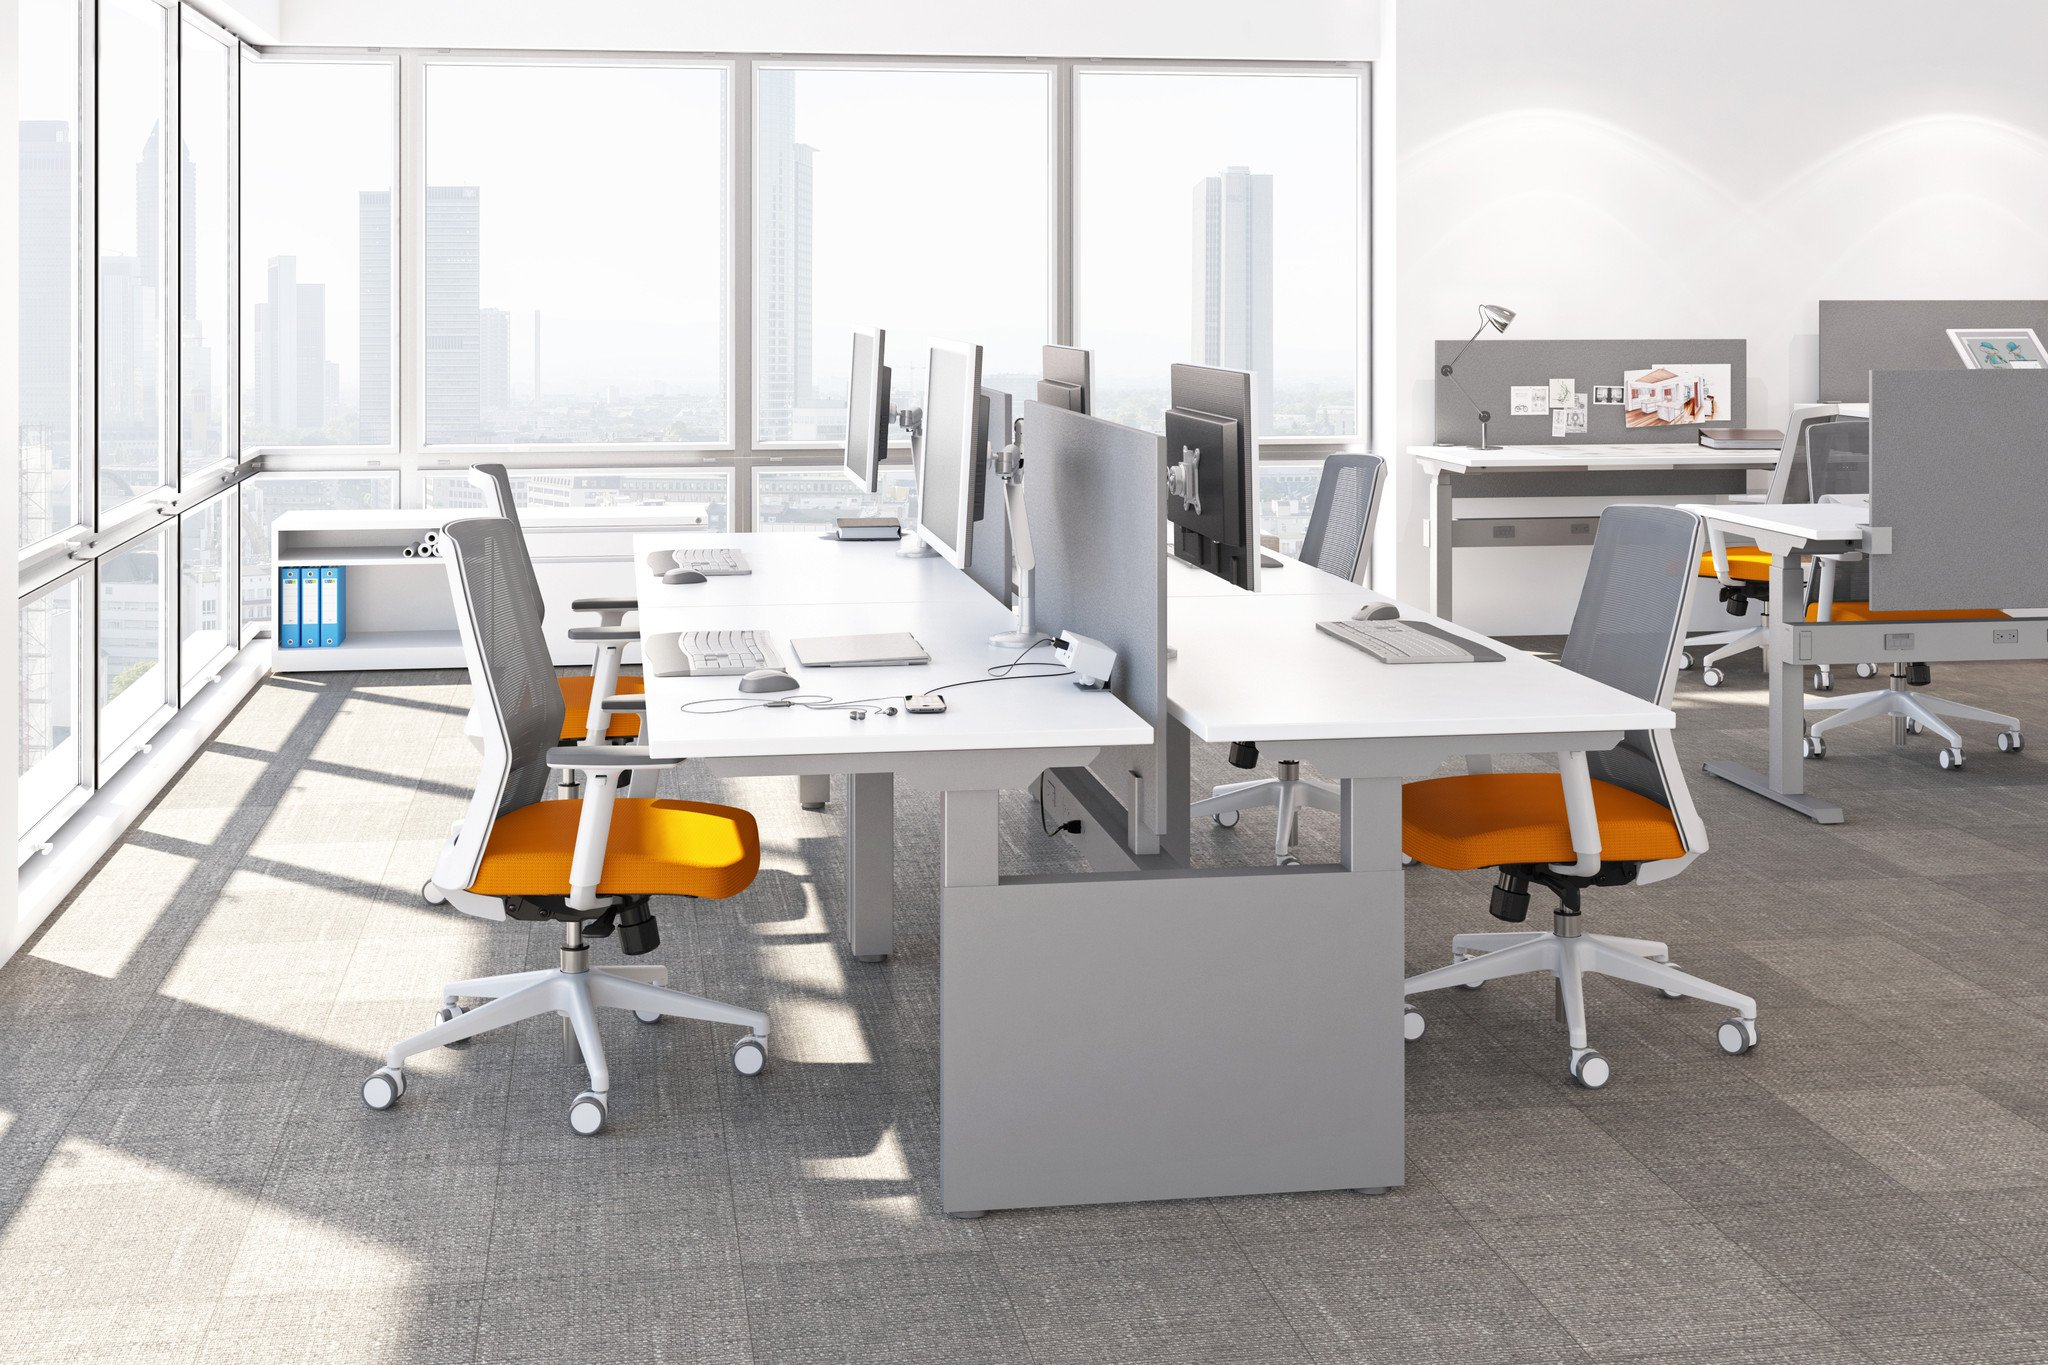 Drawn office office furniture Are are – Ideas While